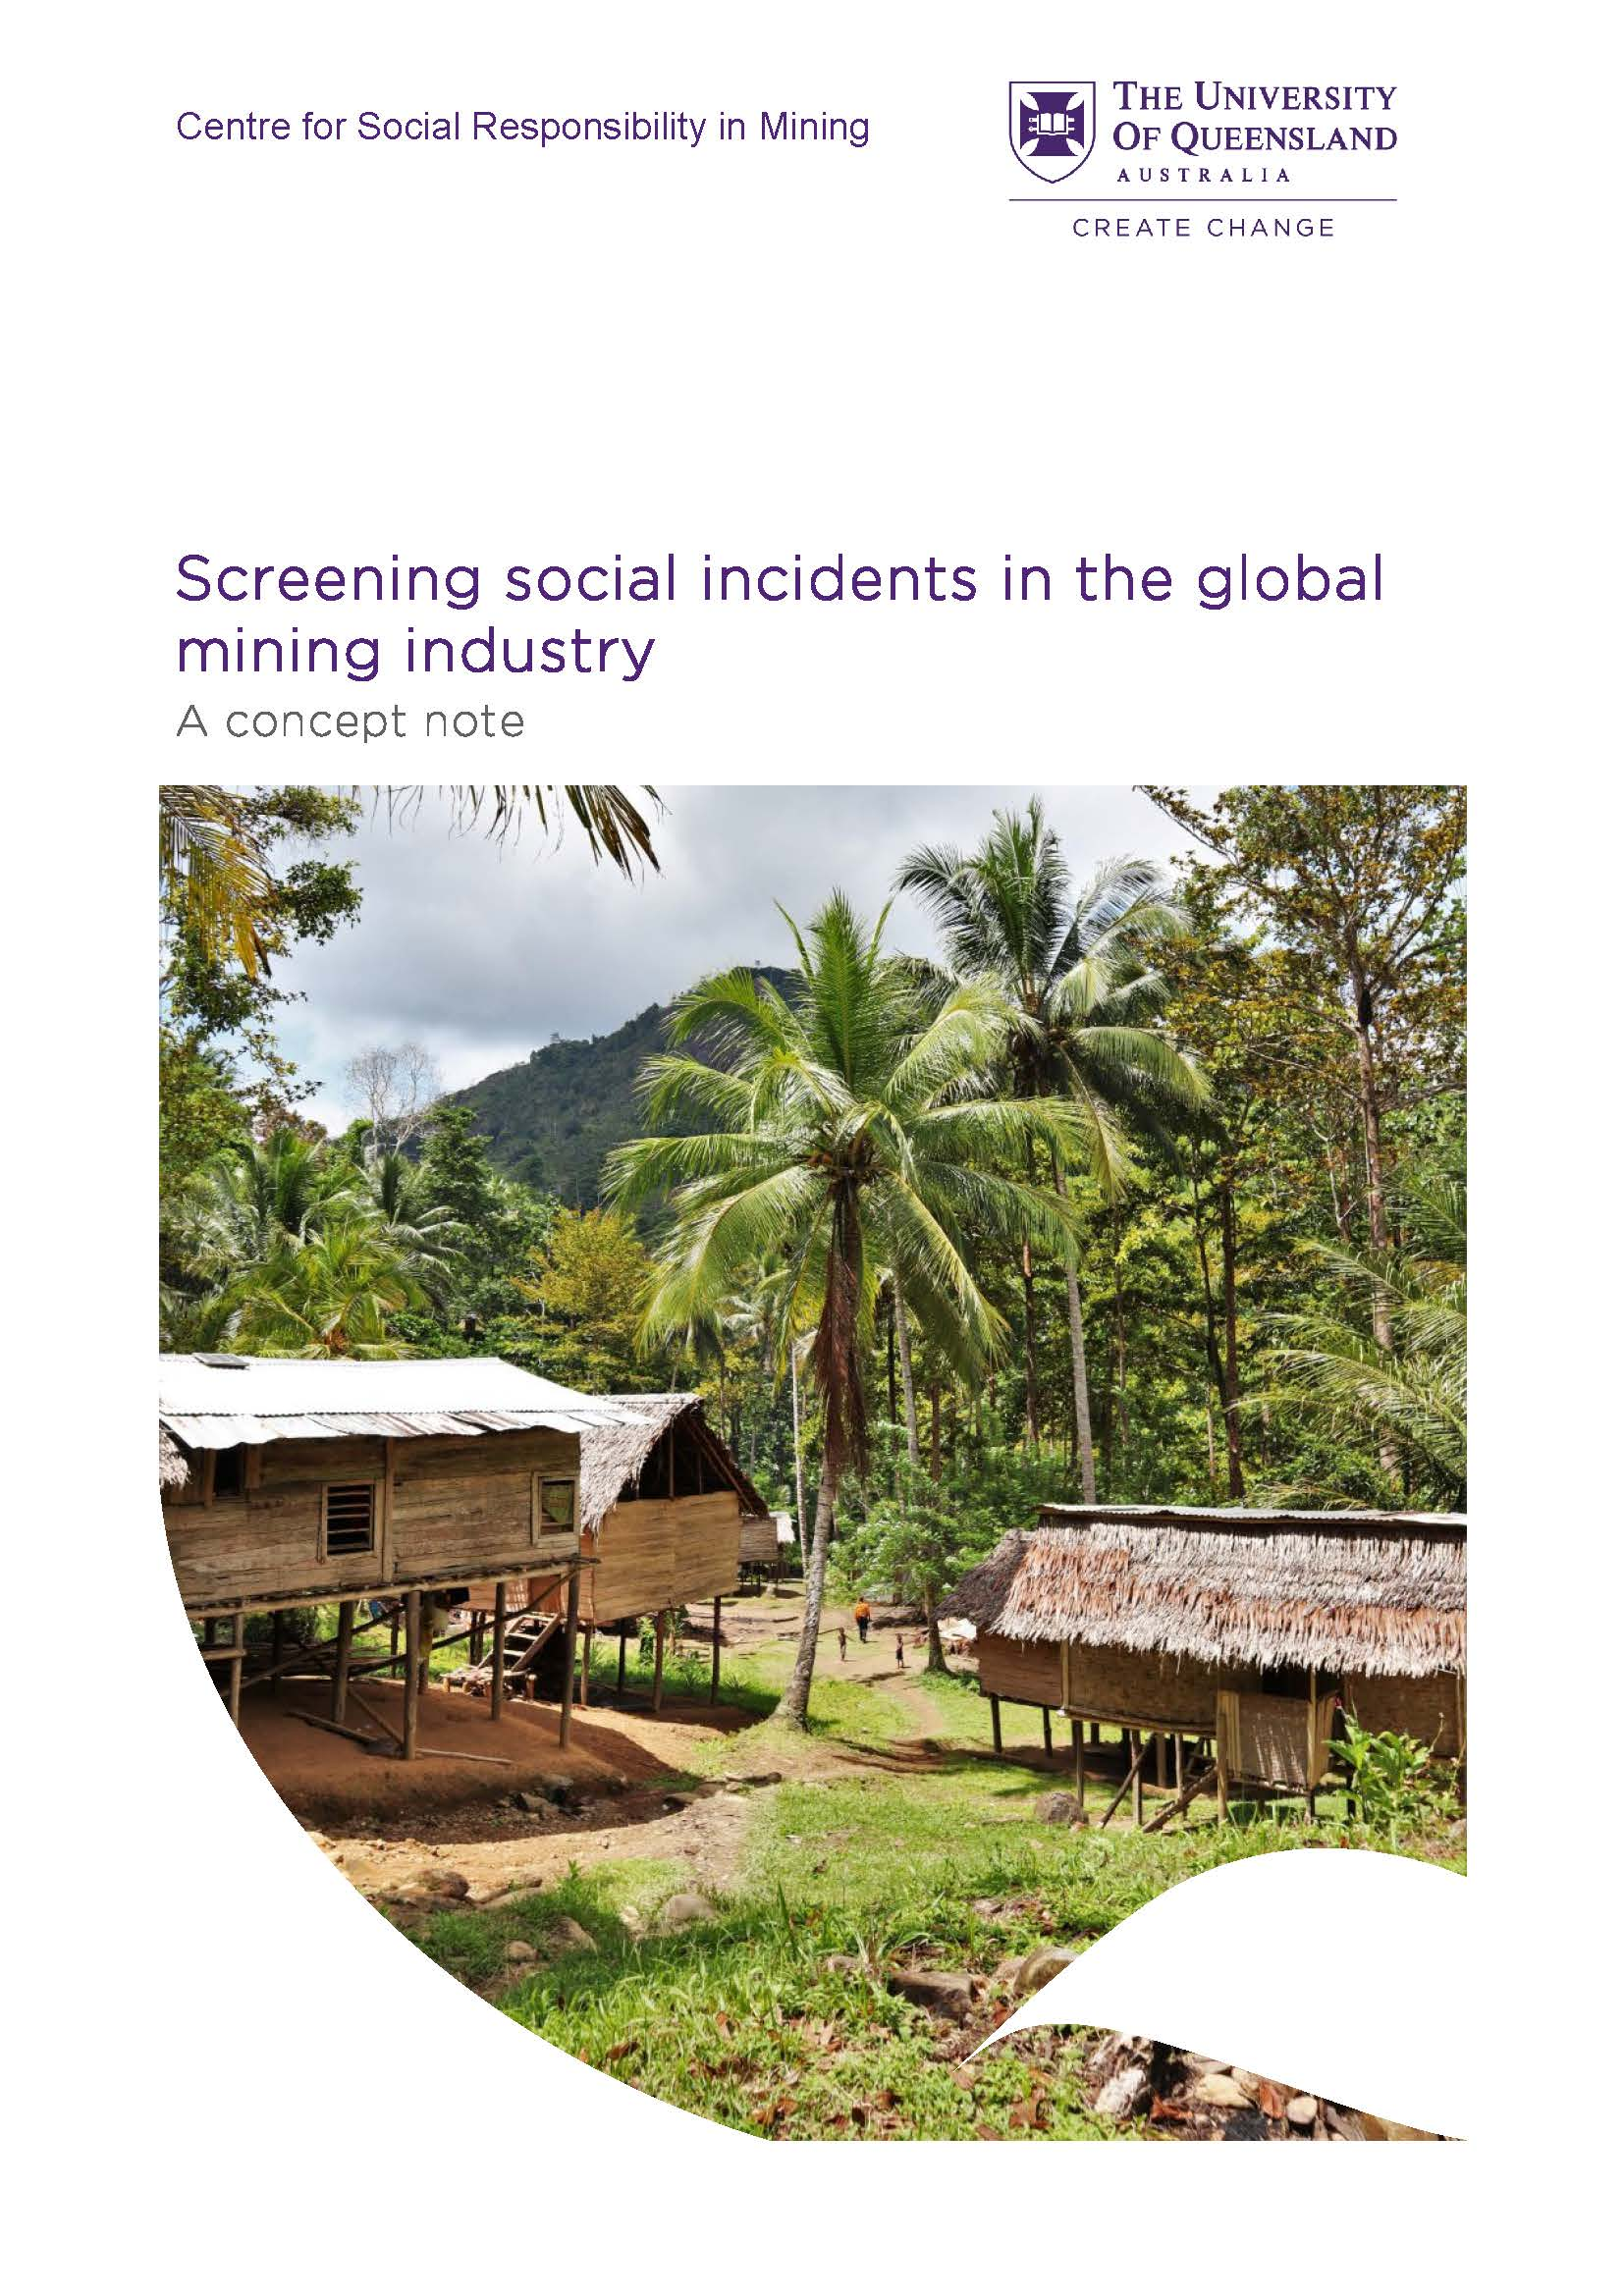 Screening social incidents in the global mining industry